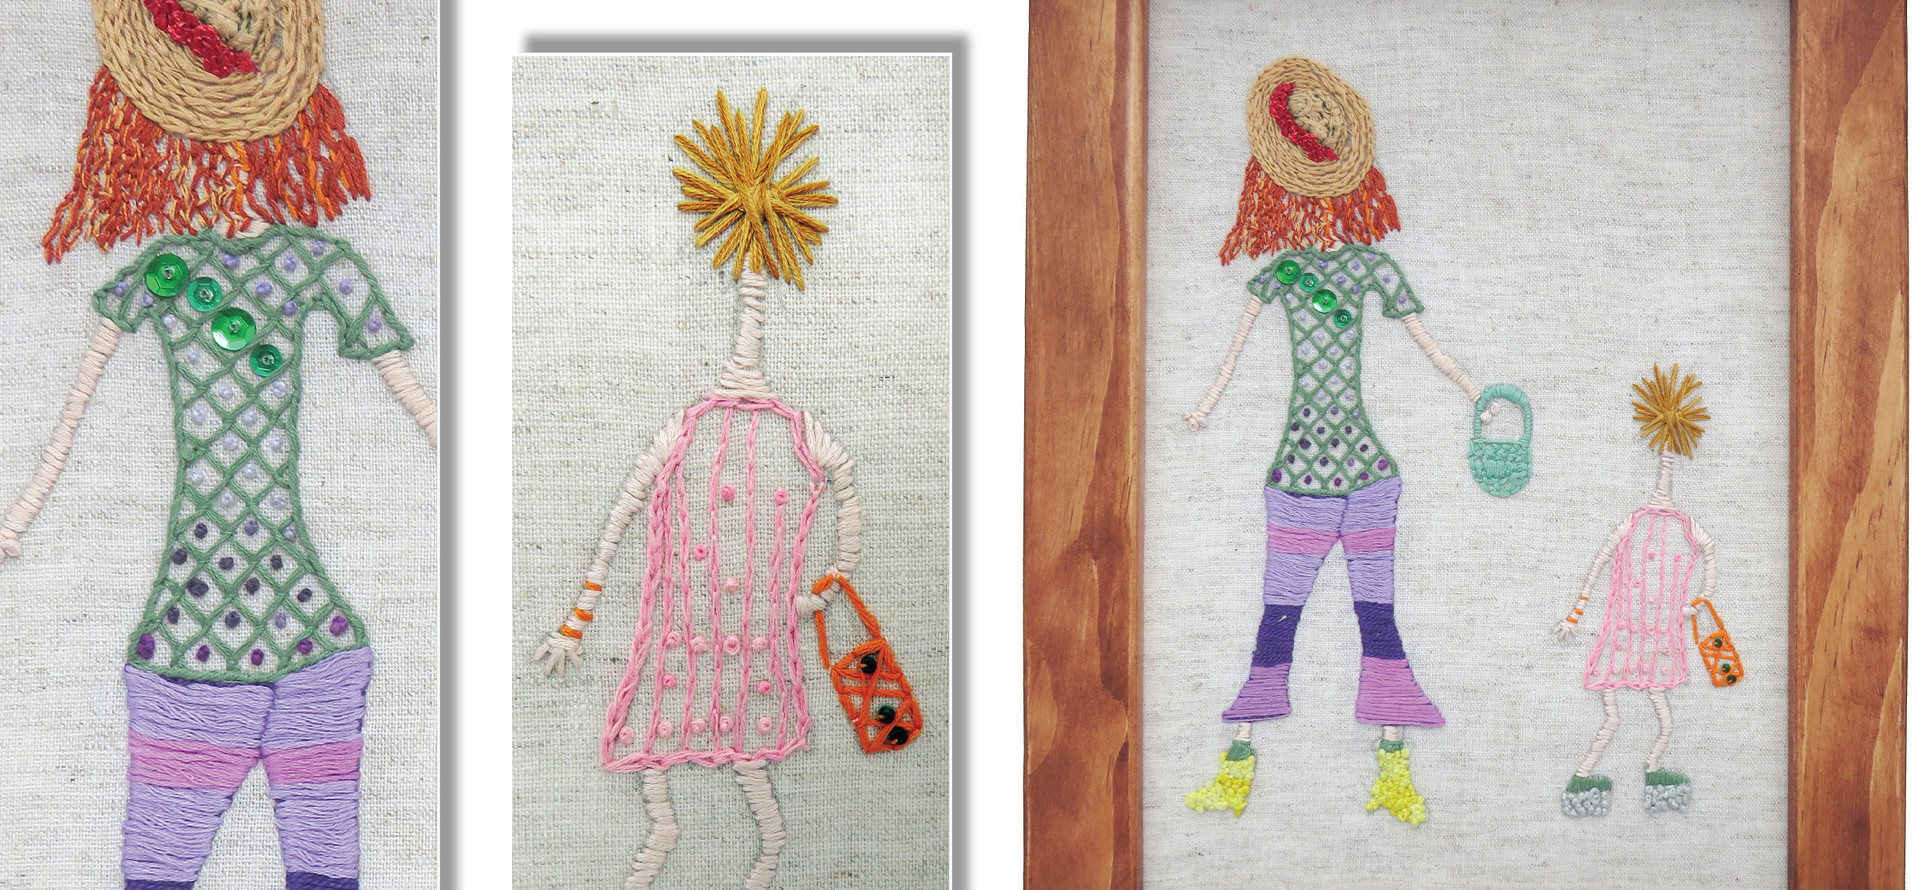 CRAZY LADIES by Sasha Maclean, age 12. New Plymouth Guild.